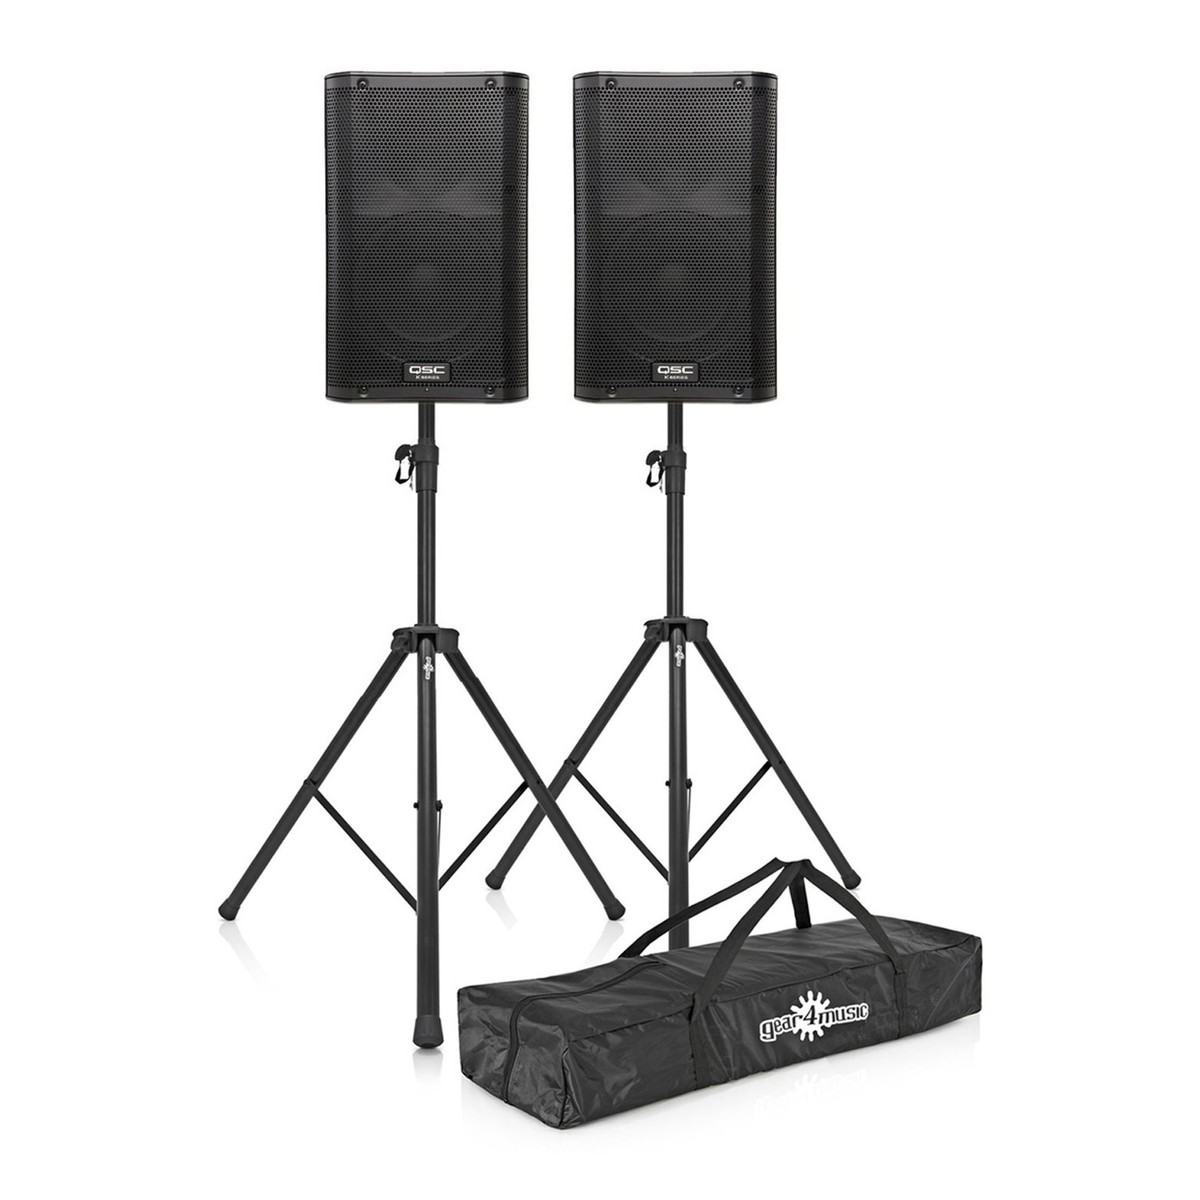 DISC QSC K8 Active PA Speaker Bundle with Stands